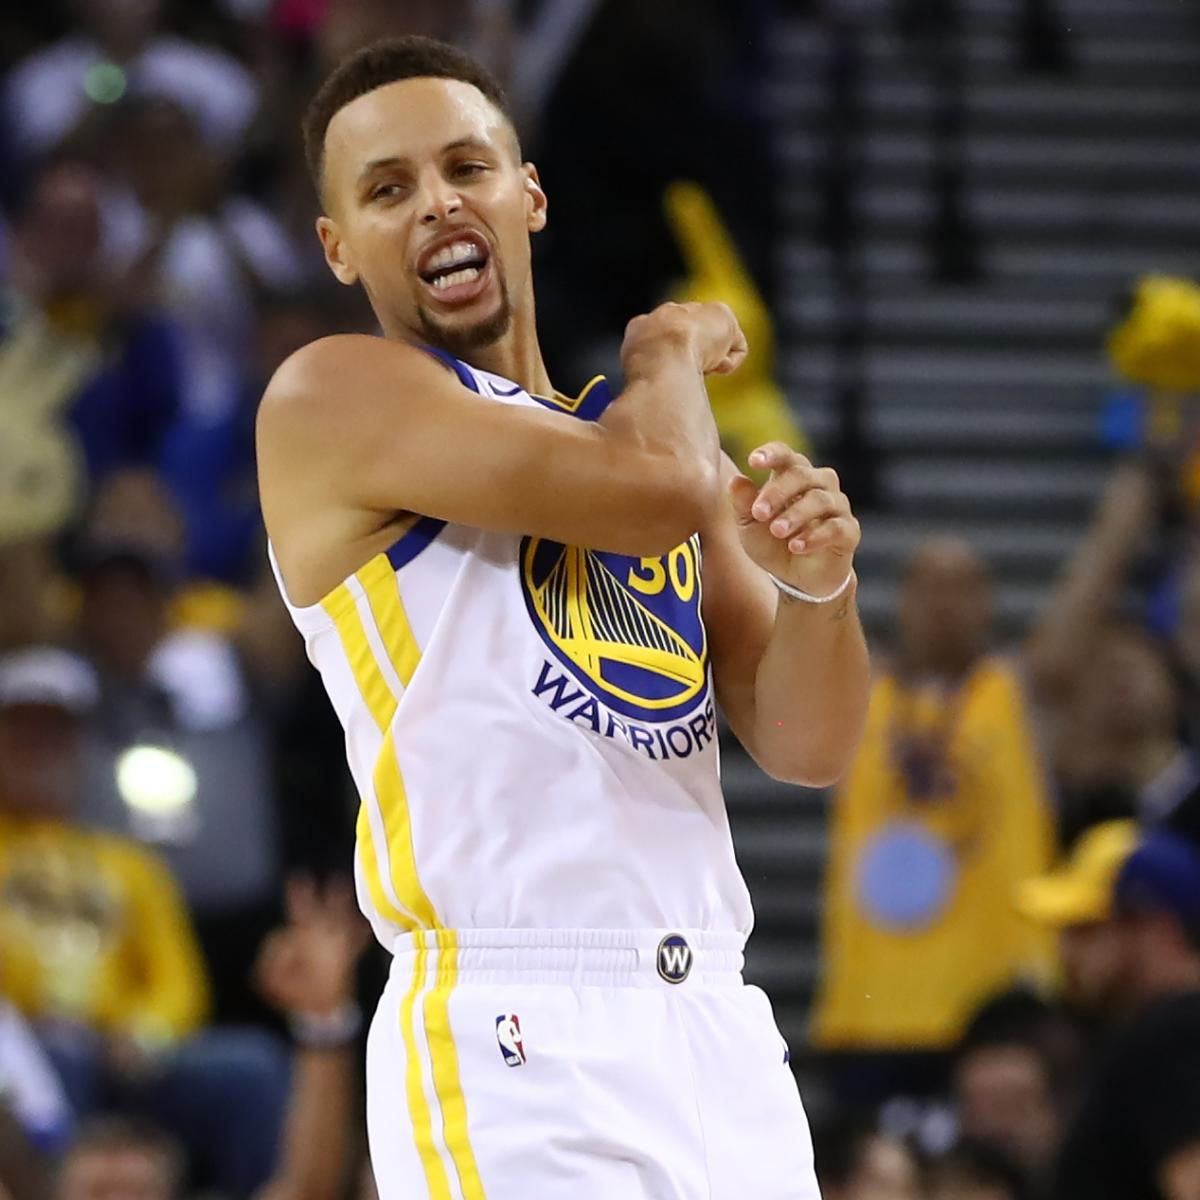 Warriors Movie Clips: Film Session 101: How The Warriors Could Be More